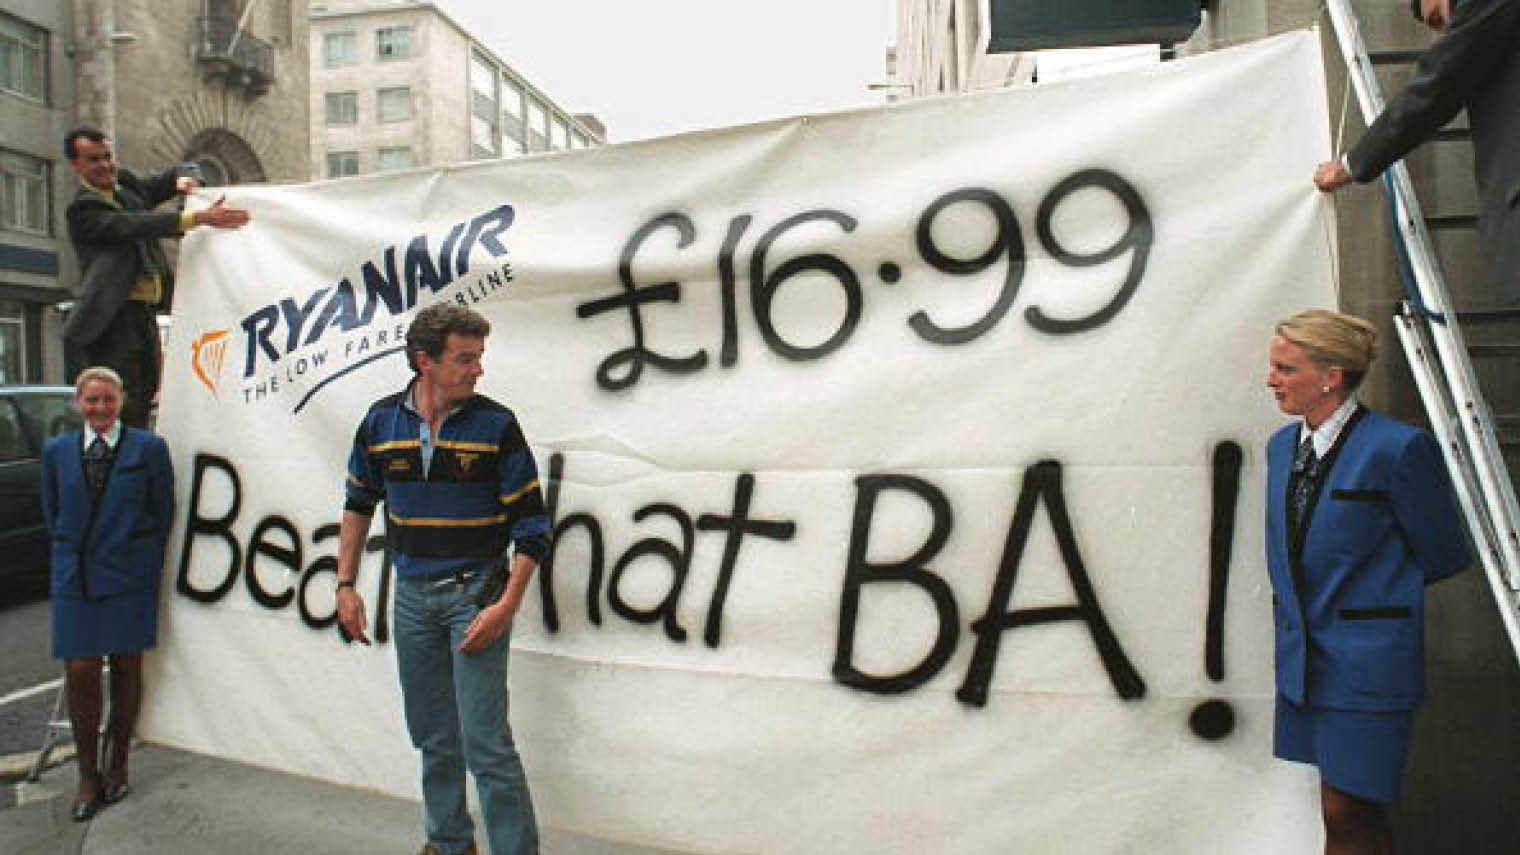 Ryanair's chief executive Michael O'Leary in front of a banner outside rival British Airways' travel shop in 1998